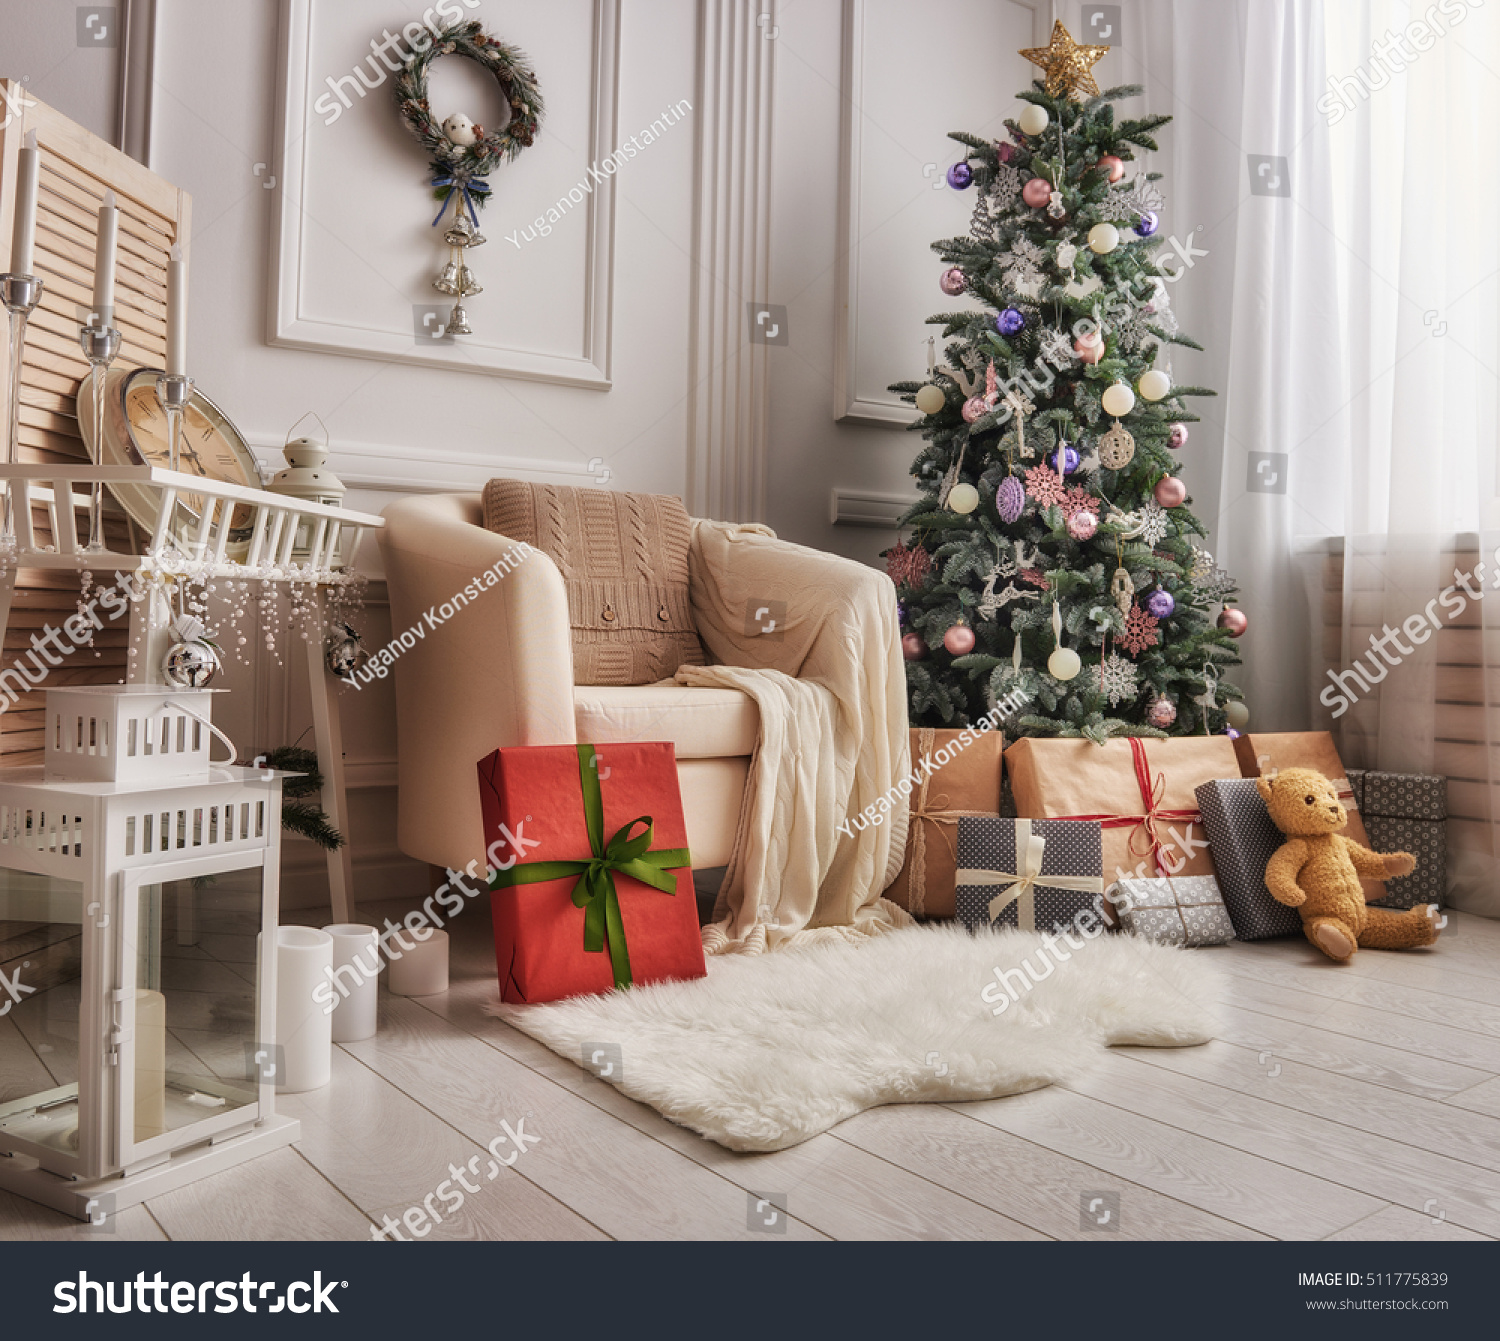 Merry christmas happy holidays beautiful living stock photo 511775839 shutterstock - Beautiful decorated rooms ...